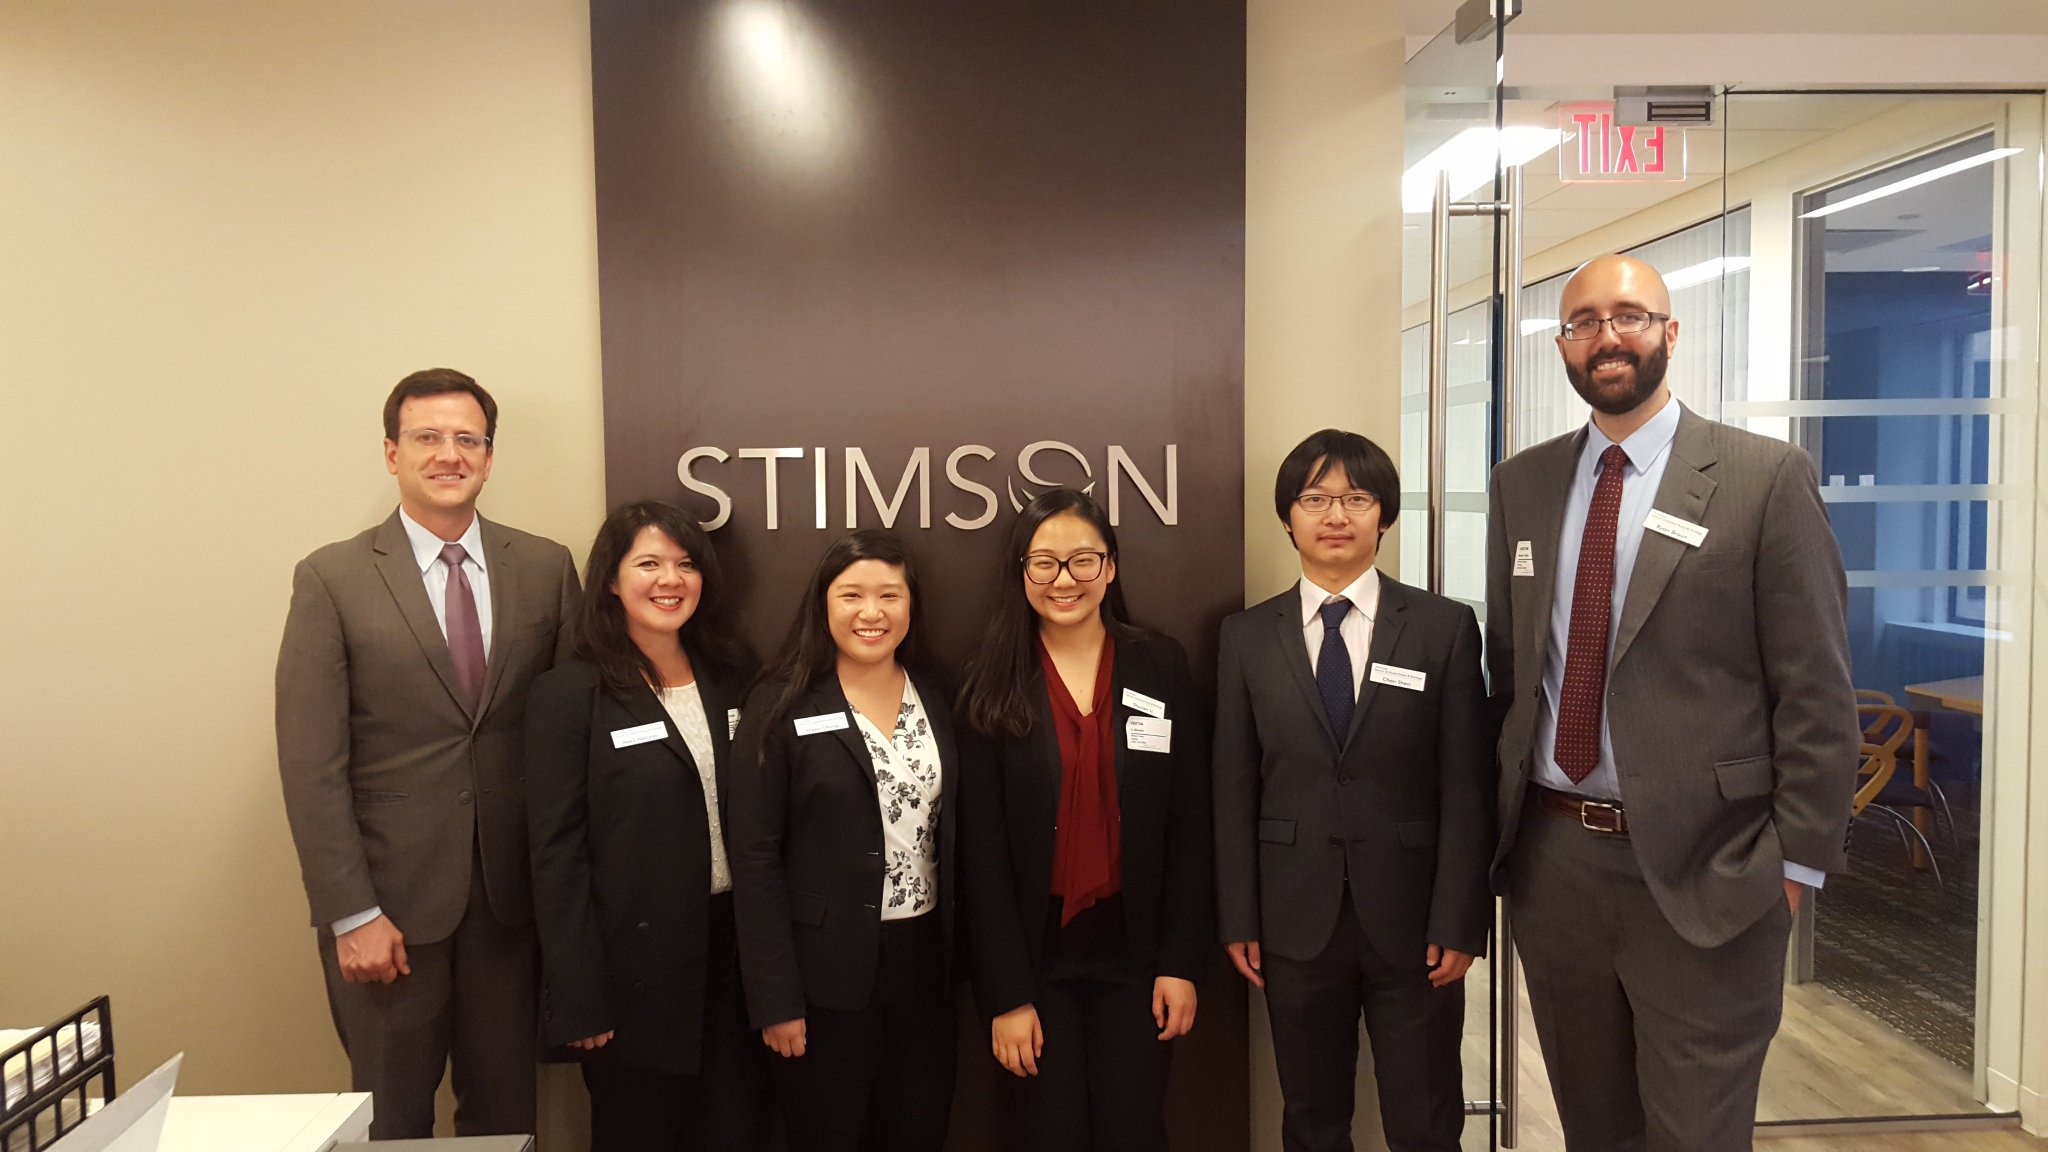 So fun seeing the ins and outs of a #thinktank like @StimsonCenter, too, as part of our employer visits in #WashingtonDC! https://t.co/HQr45R2w7g